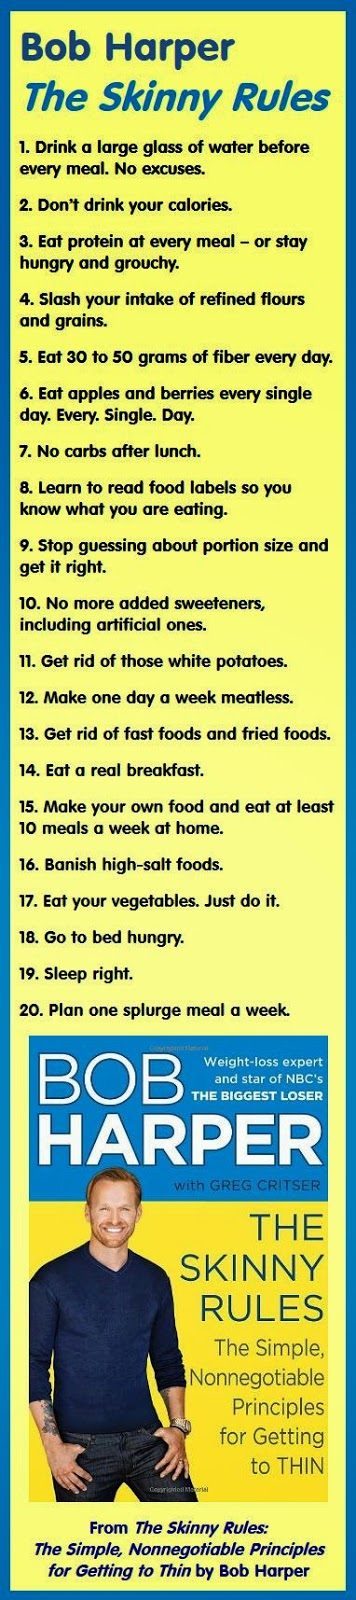 hover_share weight loss - The skinny rules